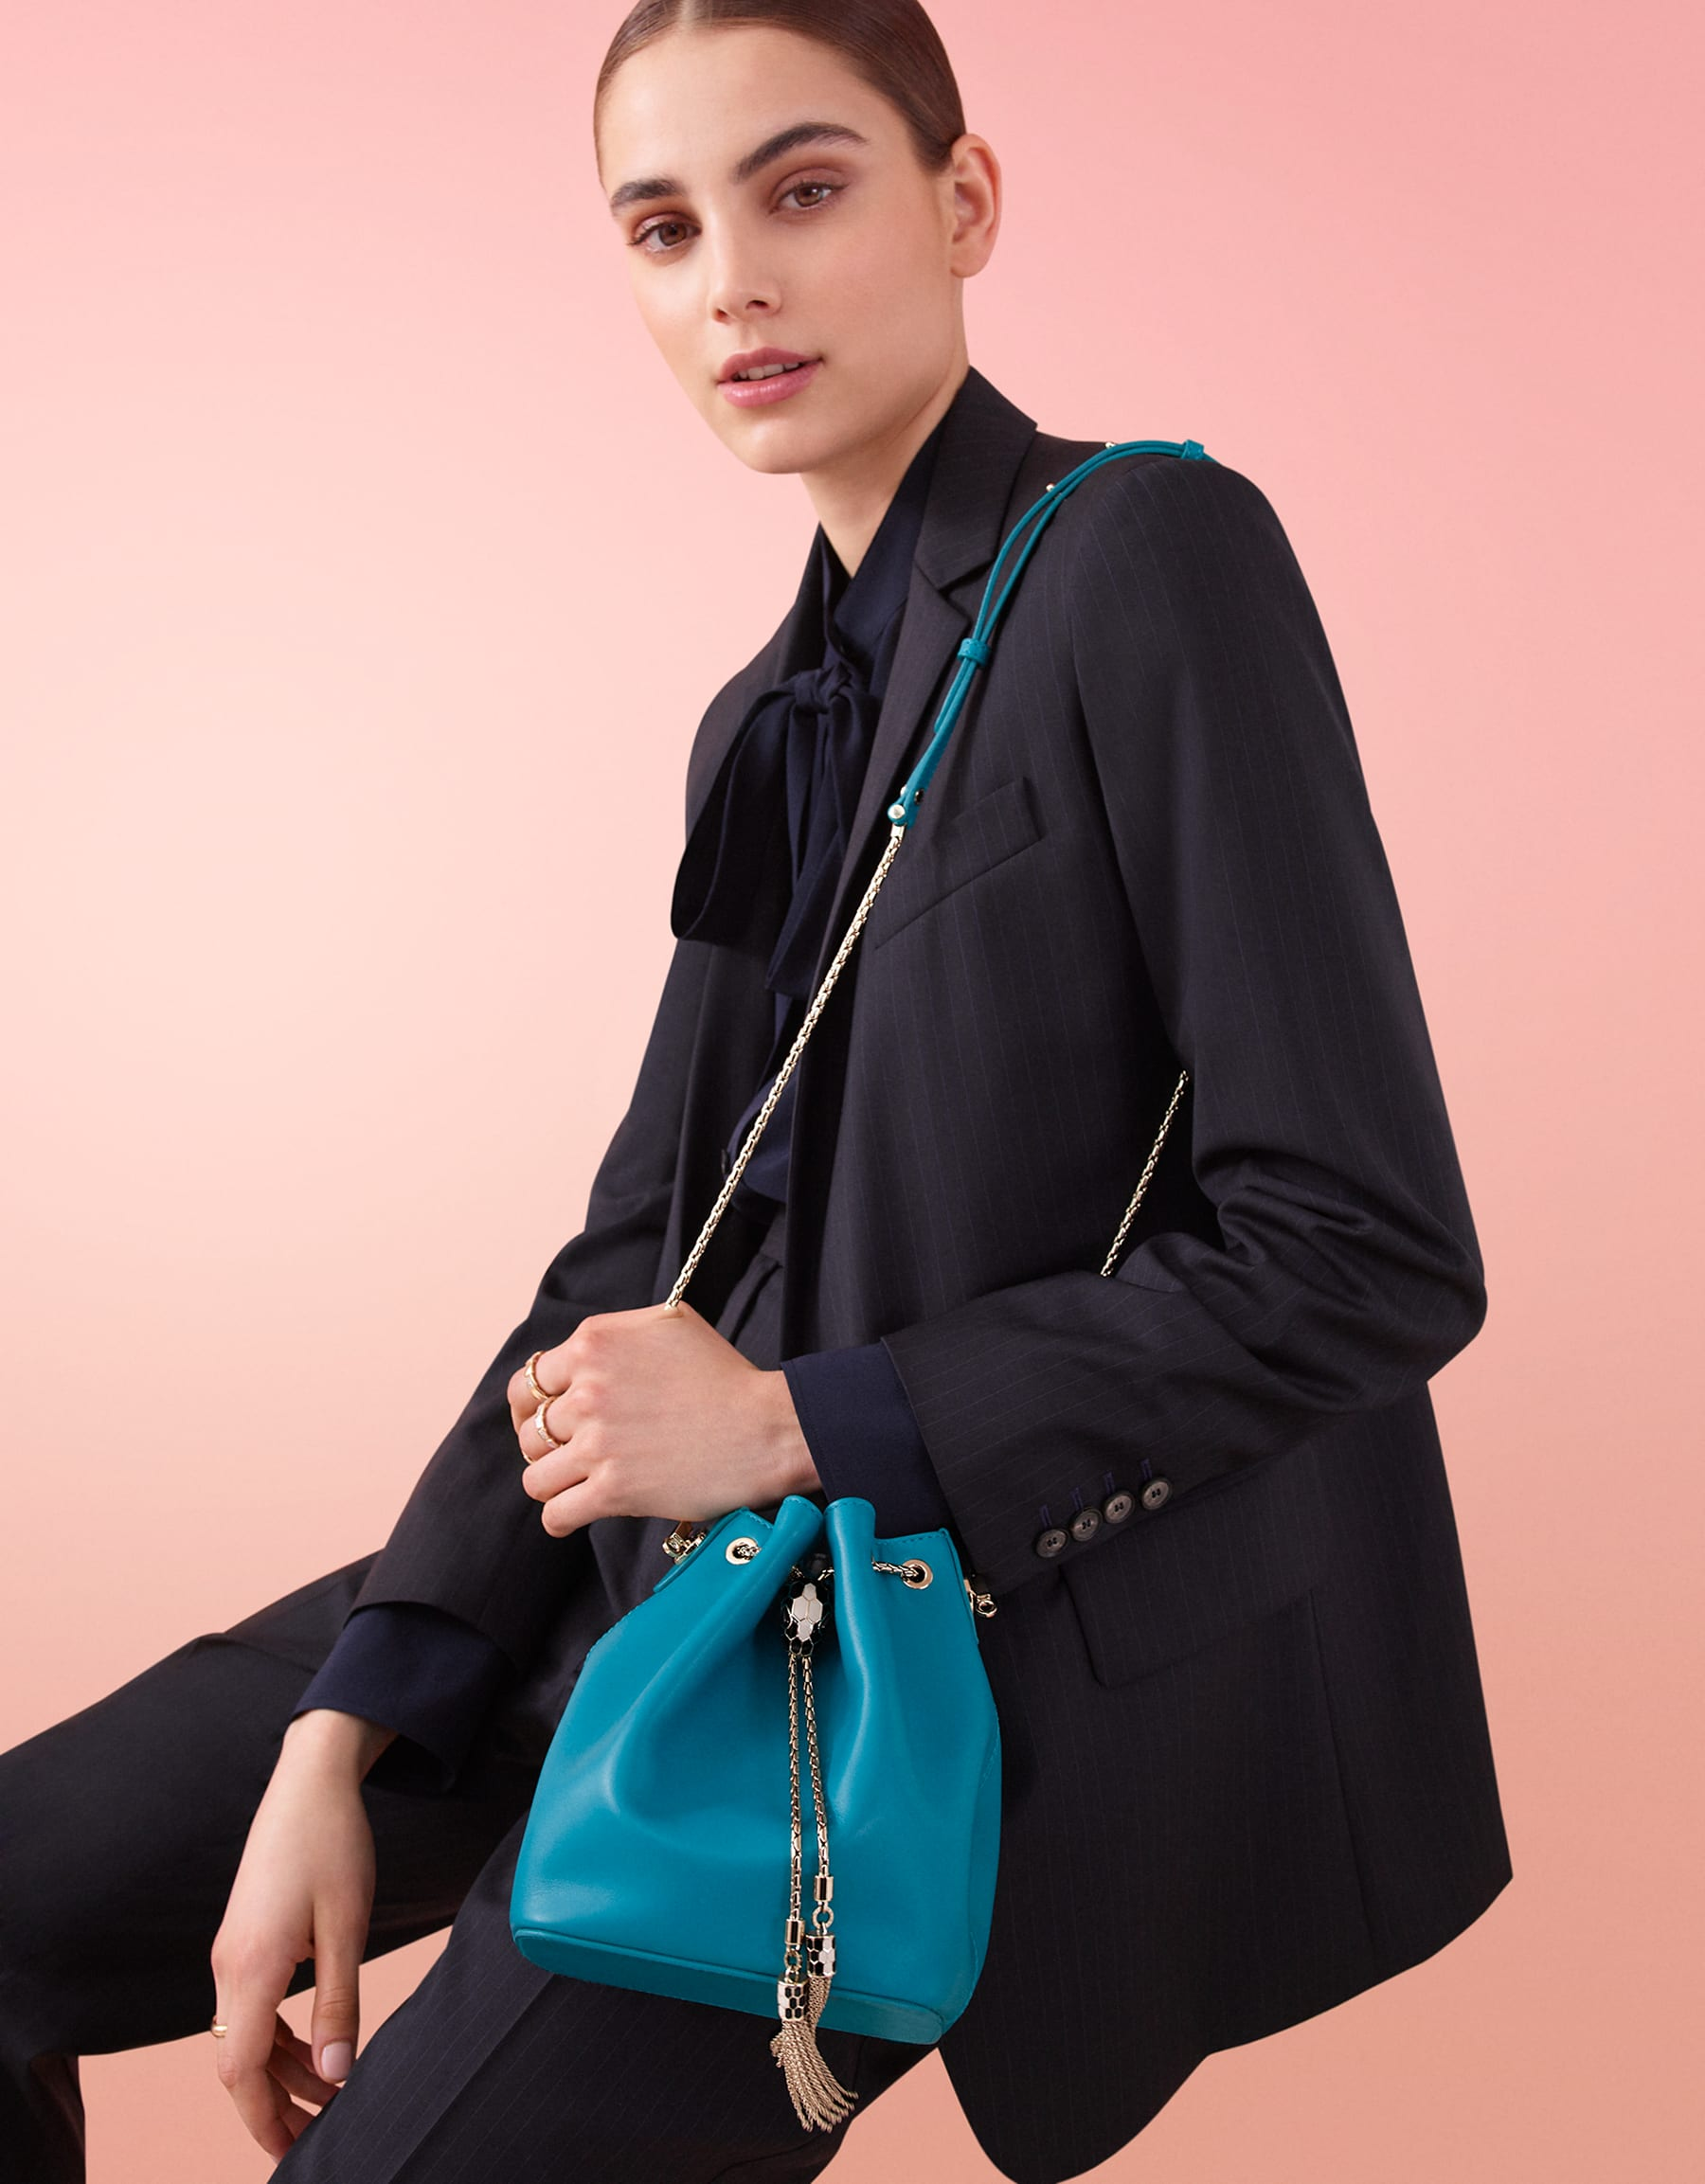 Serpenti Forever bucket bag in tropical turquoise smooth calf leather and black nappa inner lining. Snakehead closure in light gold plated brass decorated with black and white enamel, and black onyx eyes. 287981 image 5